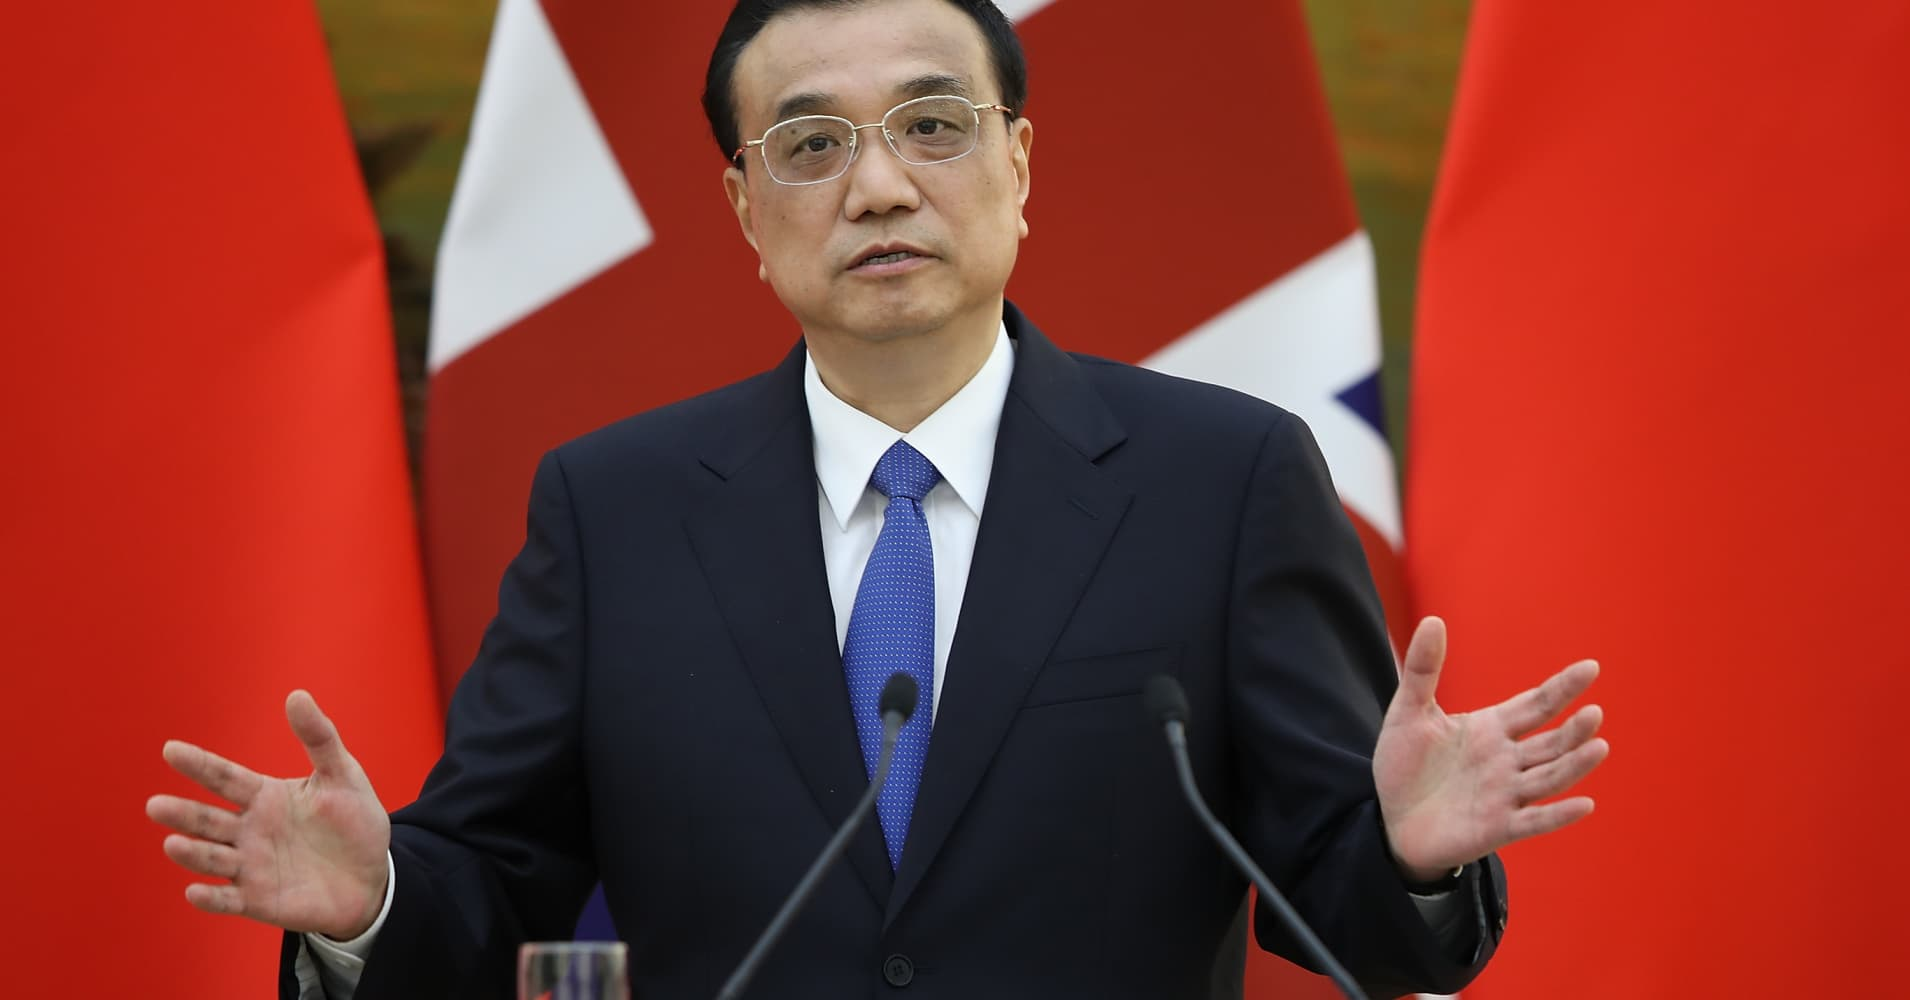 Chinese premier: 'We must be fully prepared for a tough struggle'